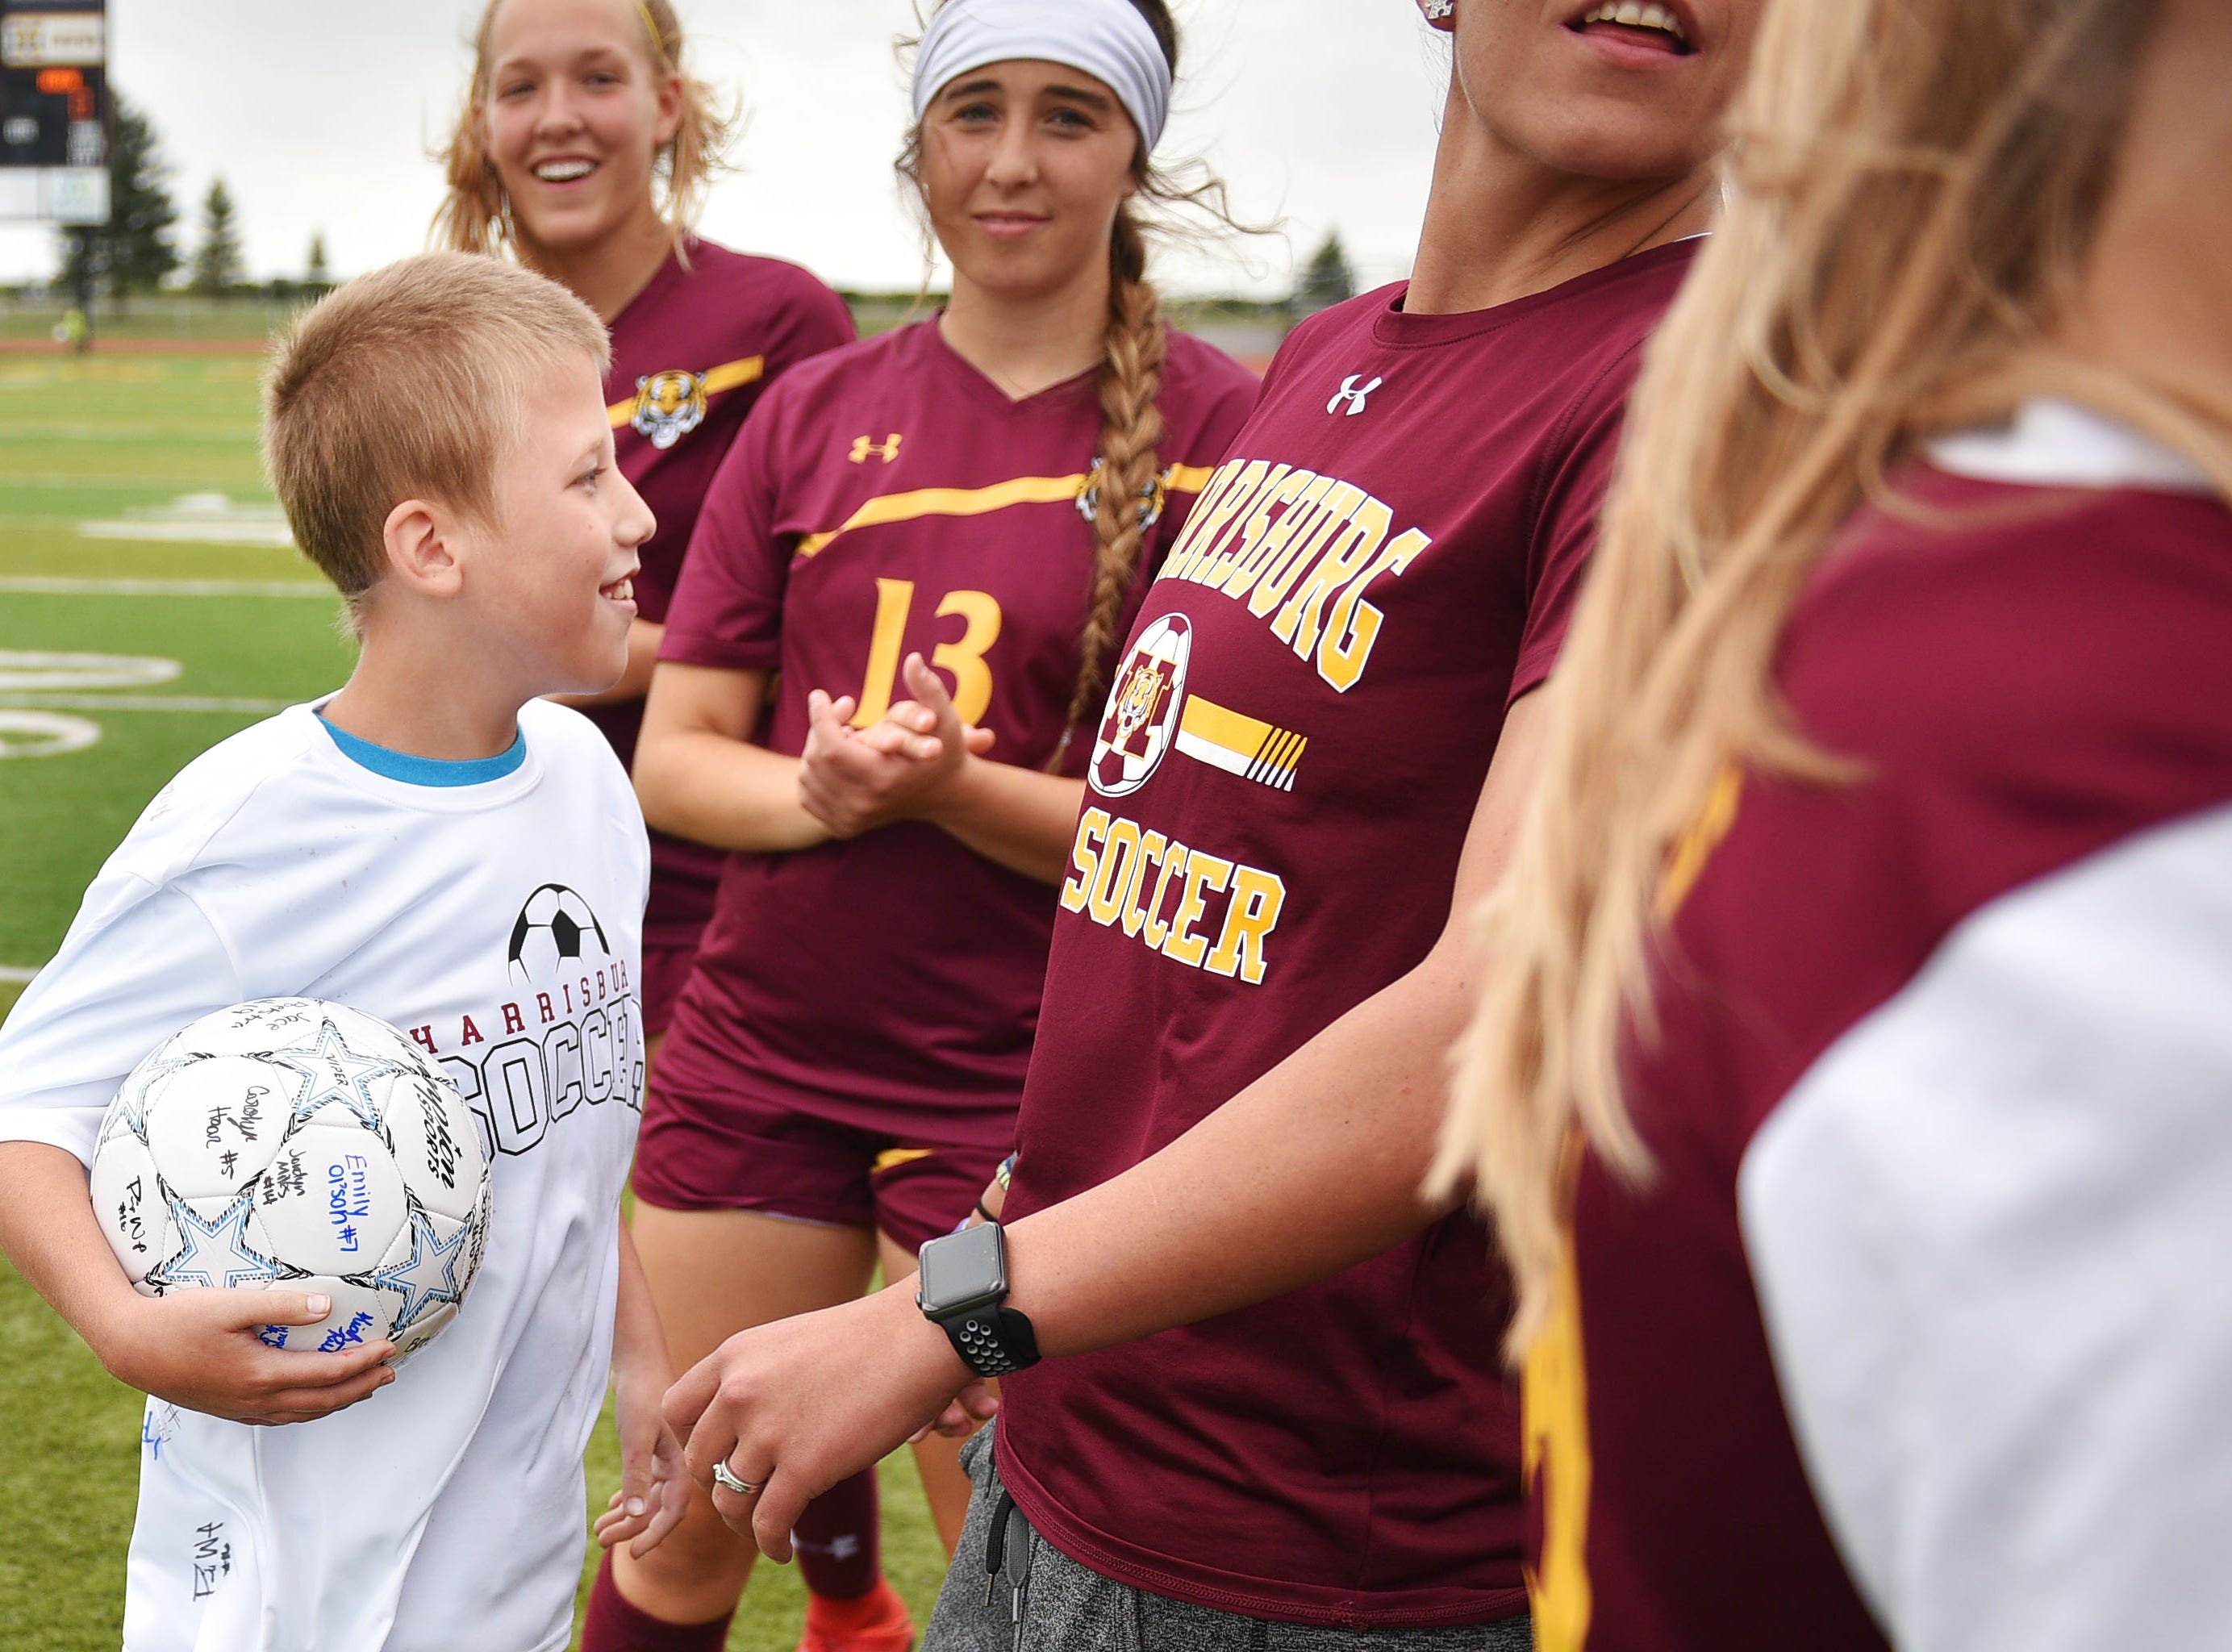 Corey Surikov huddles with Harrisburg soccer players before the game against Hurron Thursday, Sept. 13, at Harrisburg. Corey Surikov and Grant Hamilton were named Players of the Game.